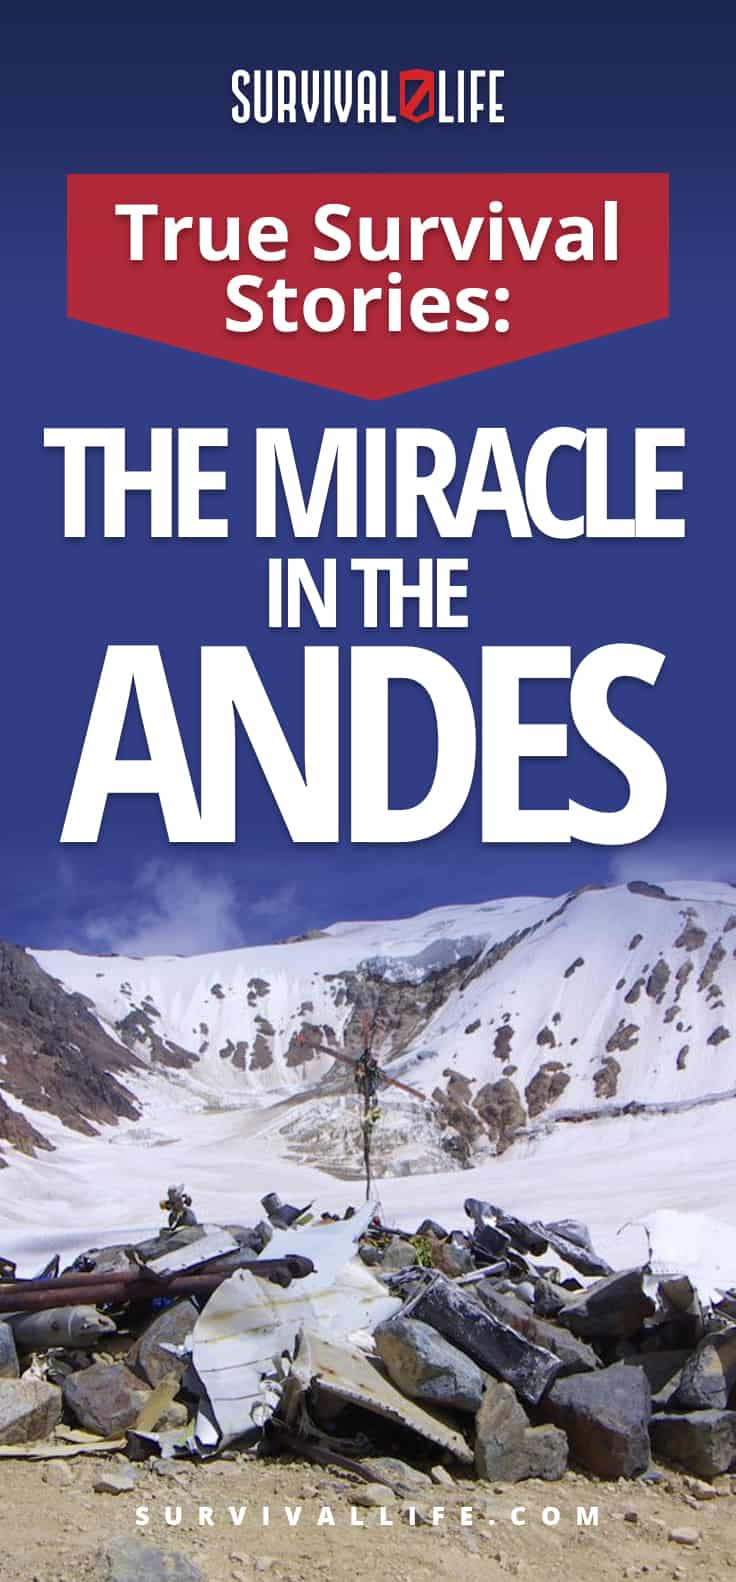 True Survival Stories: The Miracle In the Andes